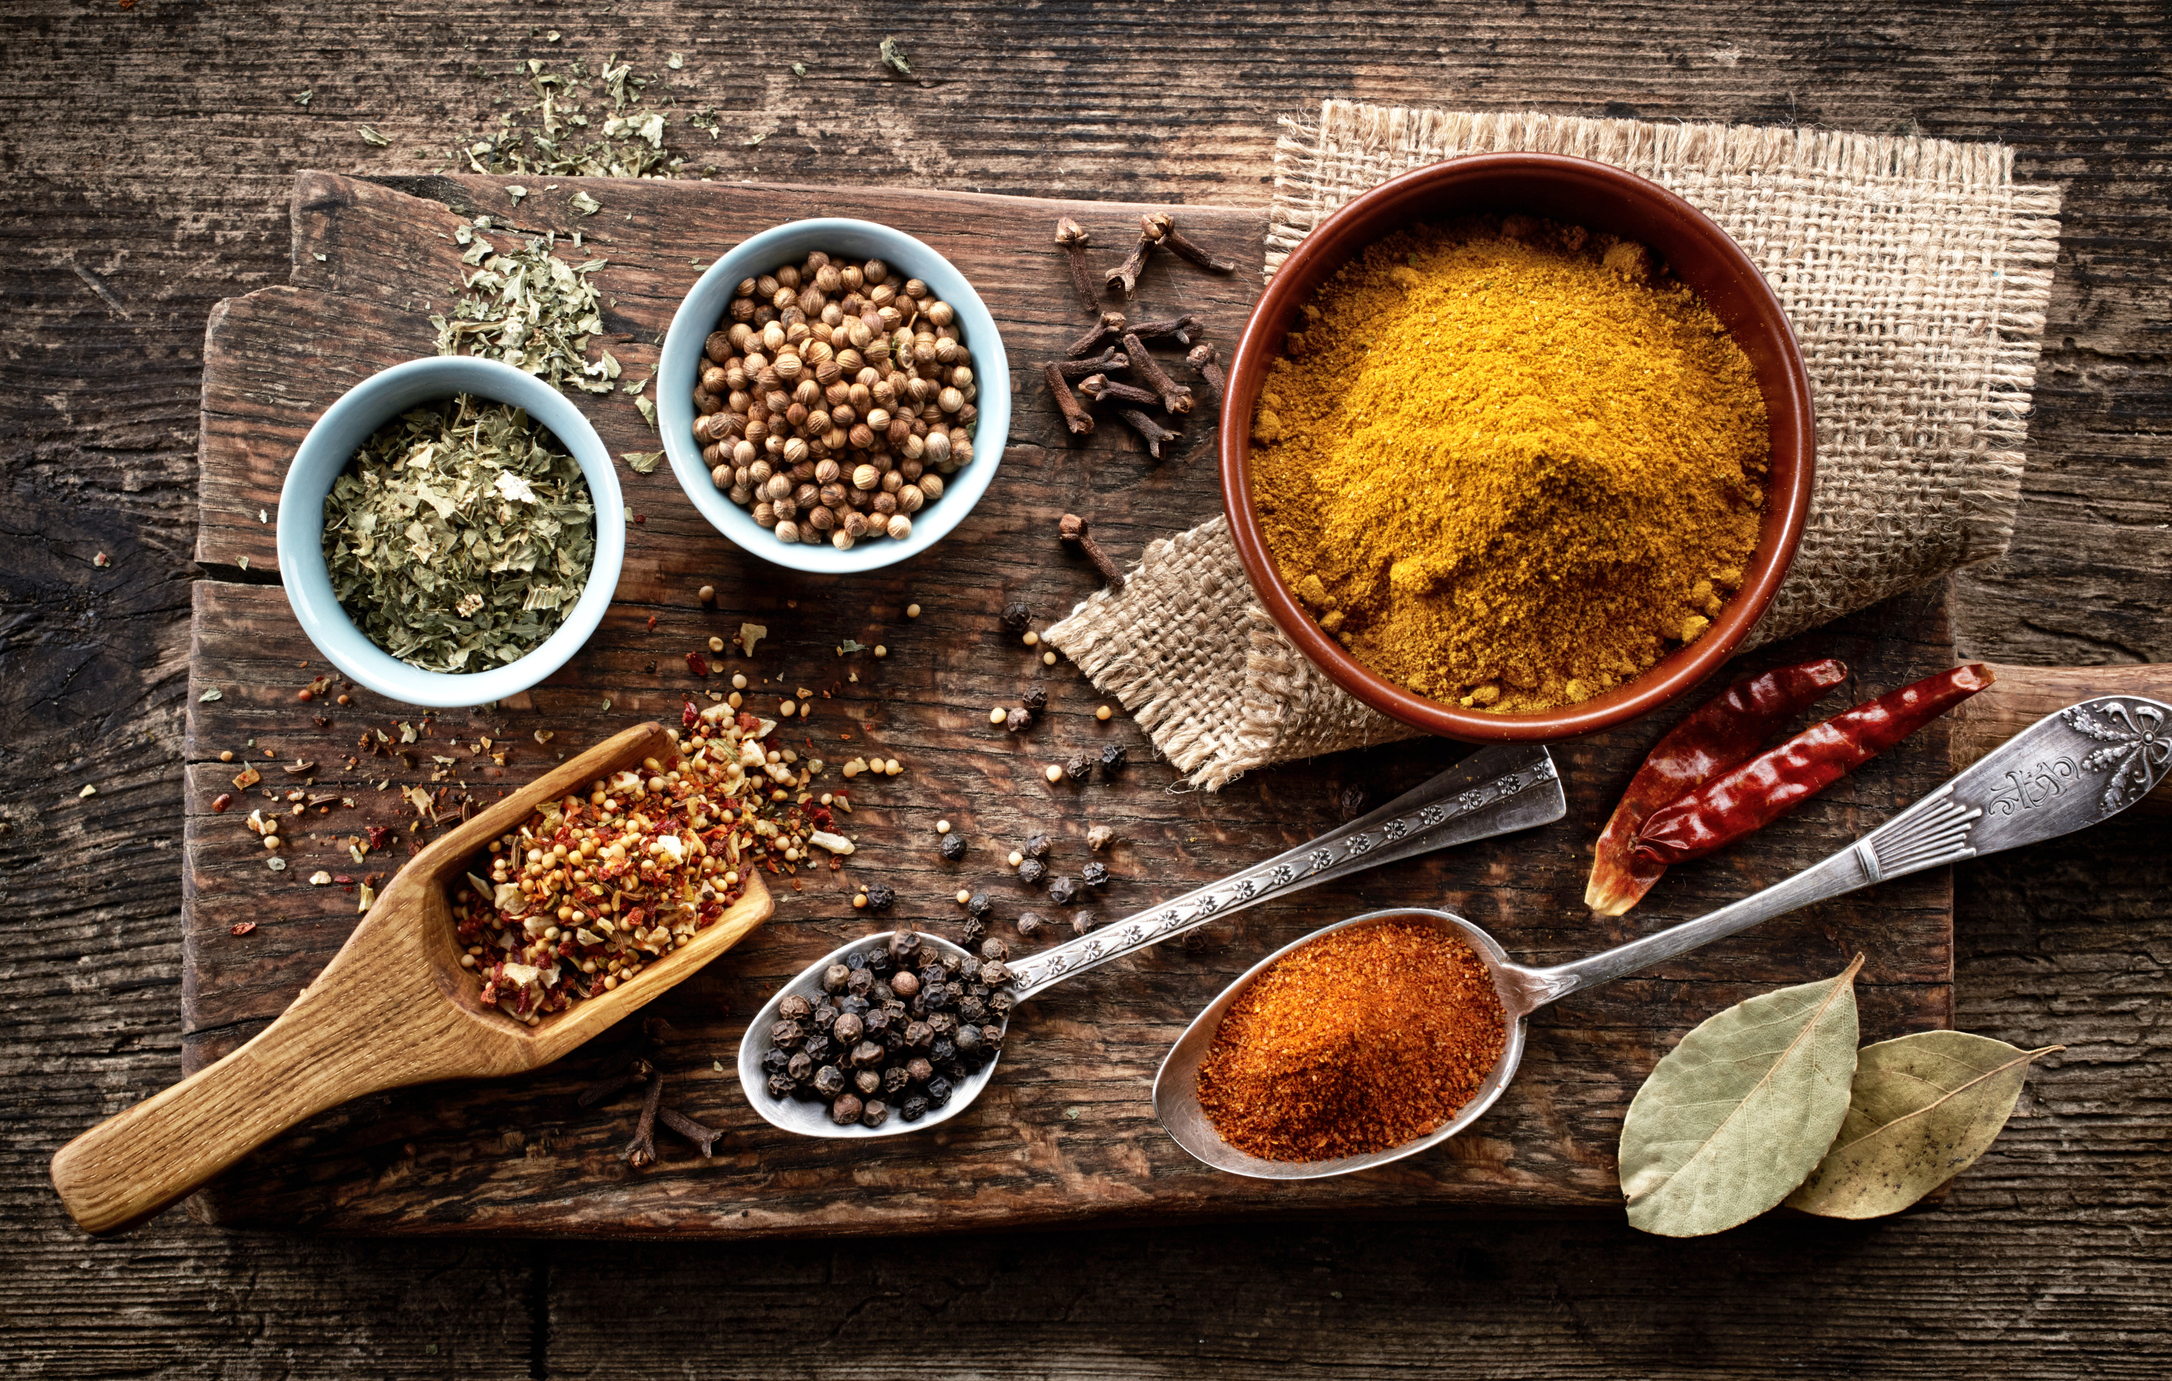 World's 'spice wizard': How to use and make spices at home ...